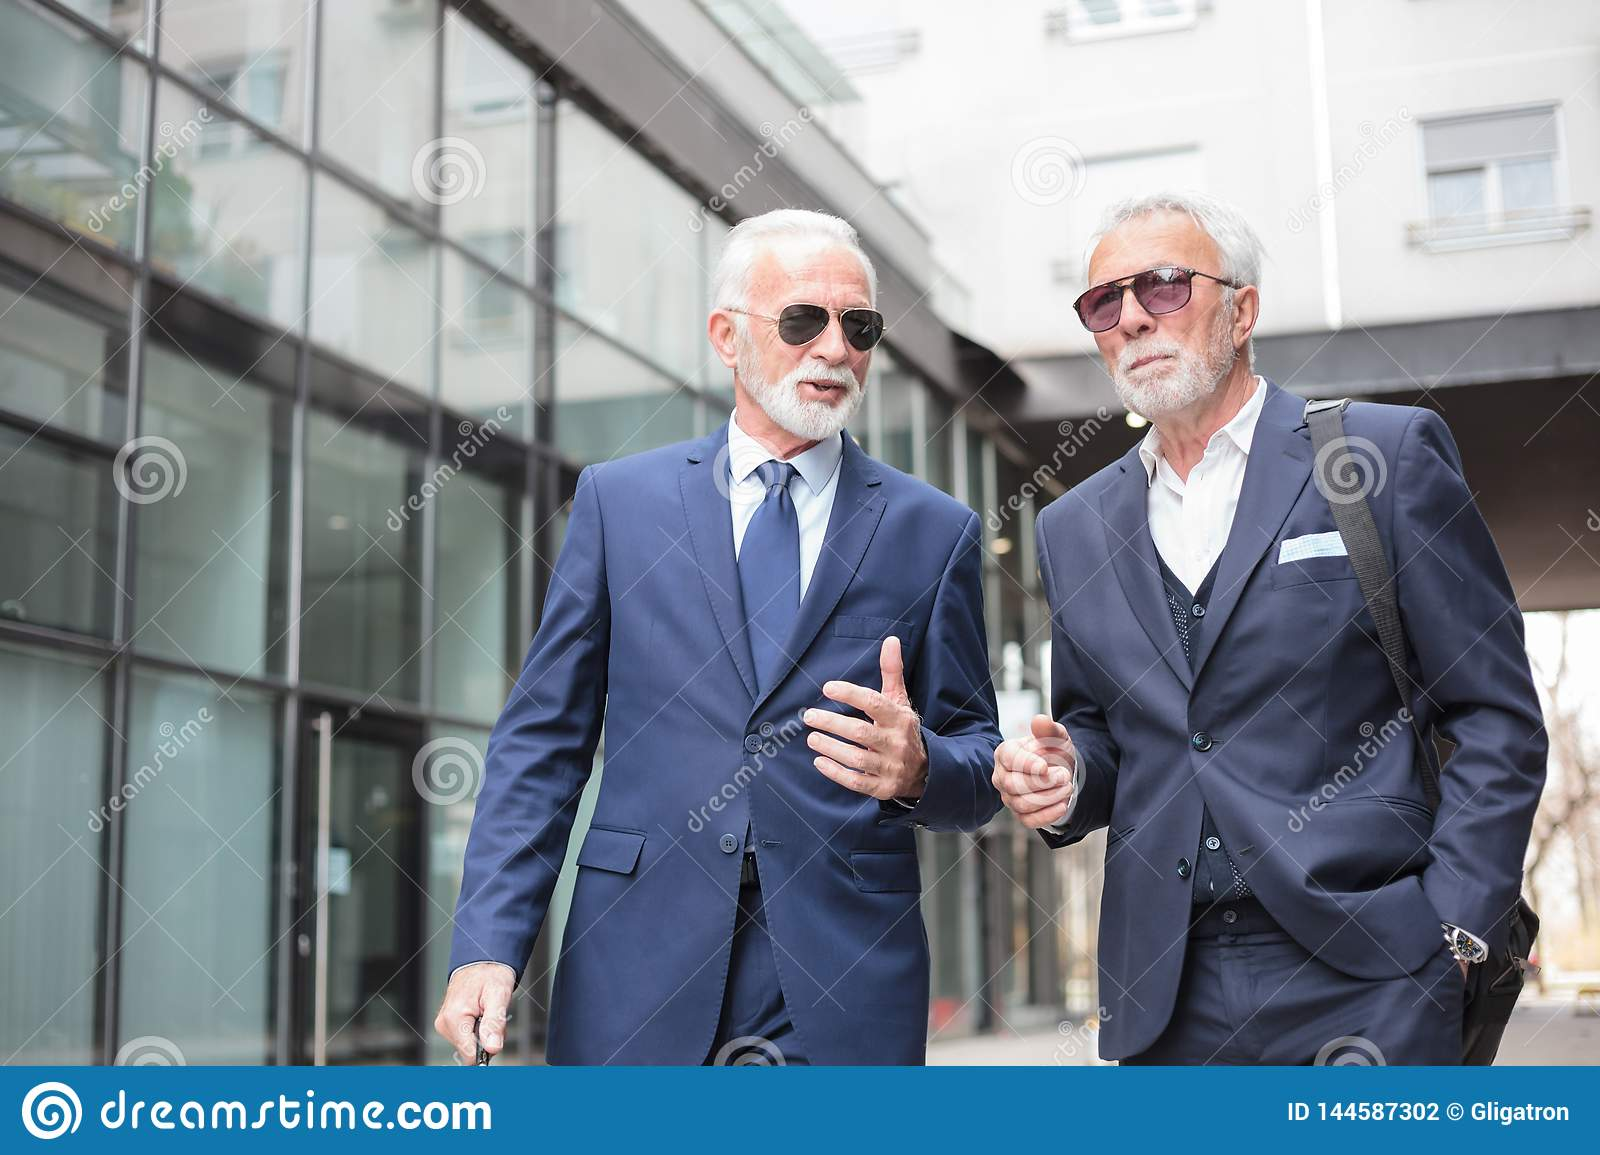 Two senior businessmen walking down the street, discussing